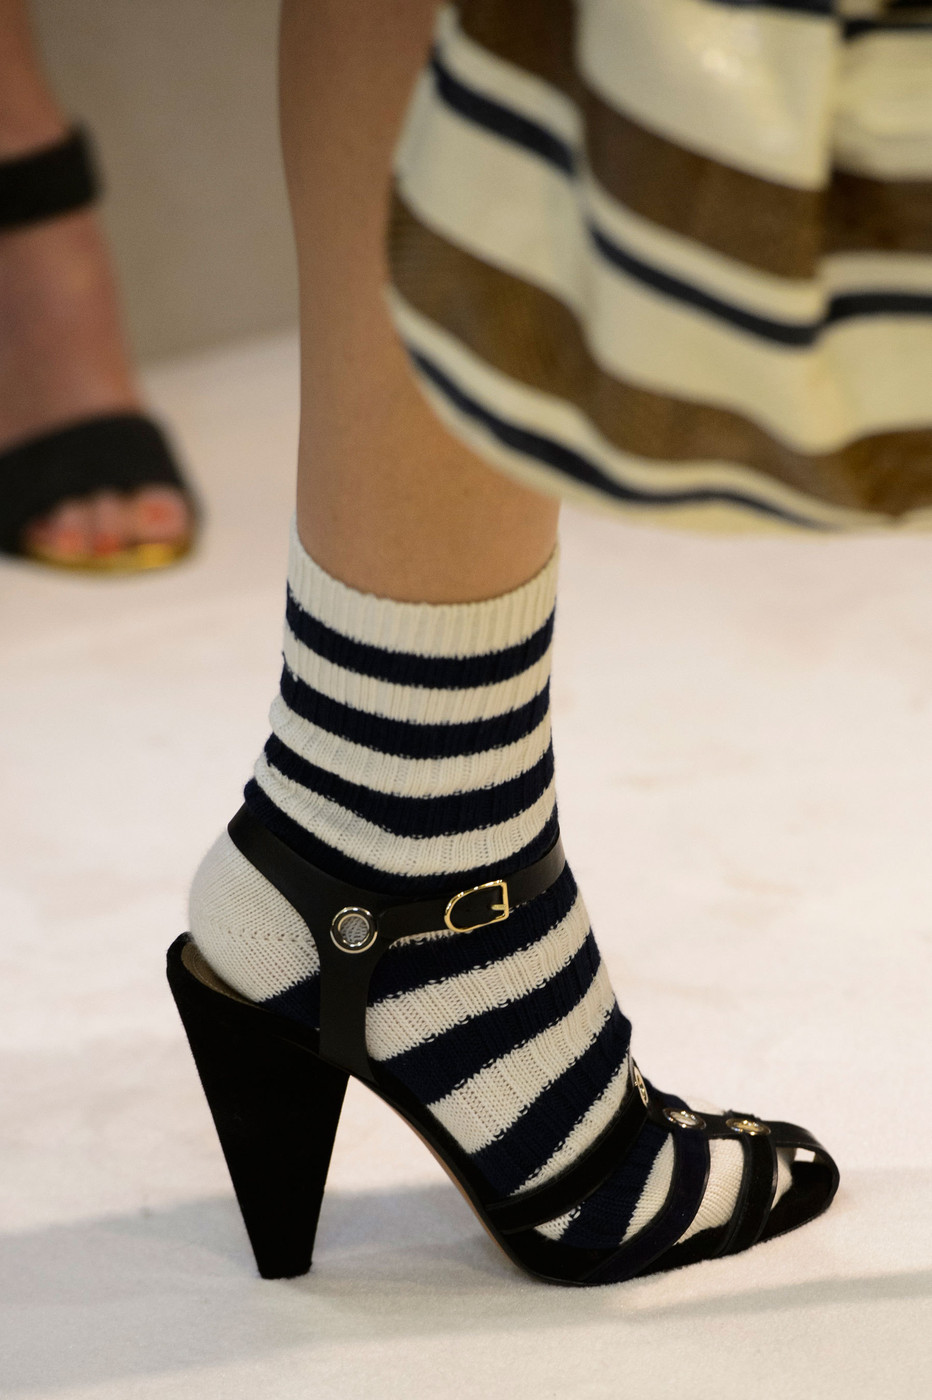 Sonia Rykiel Spring/Summer 2015 collection